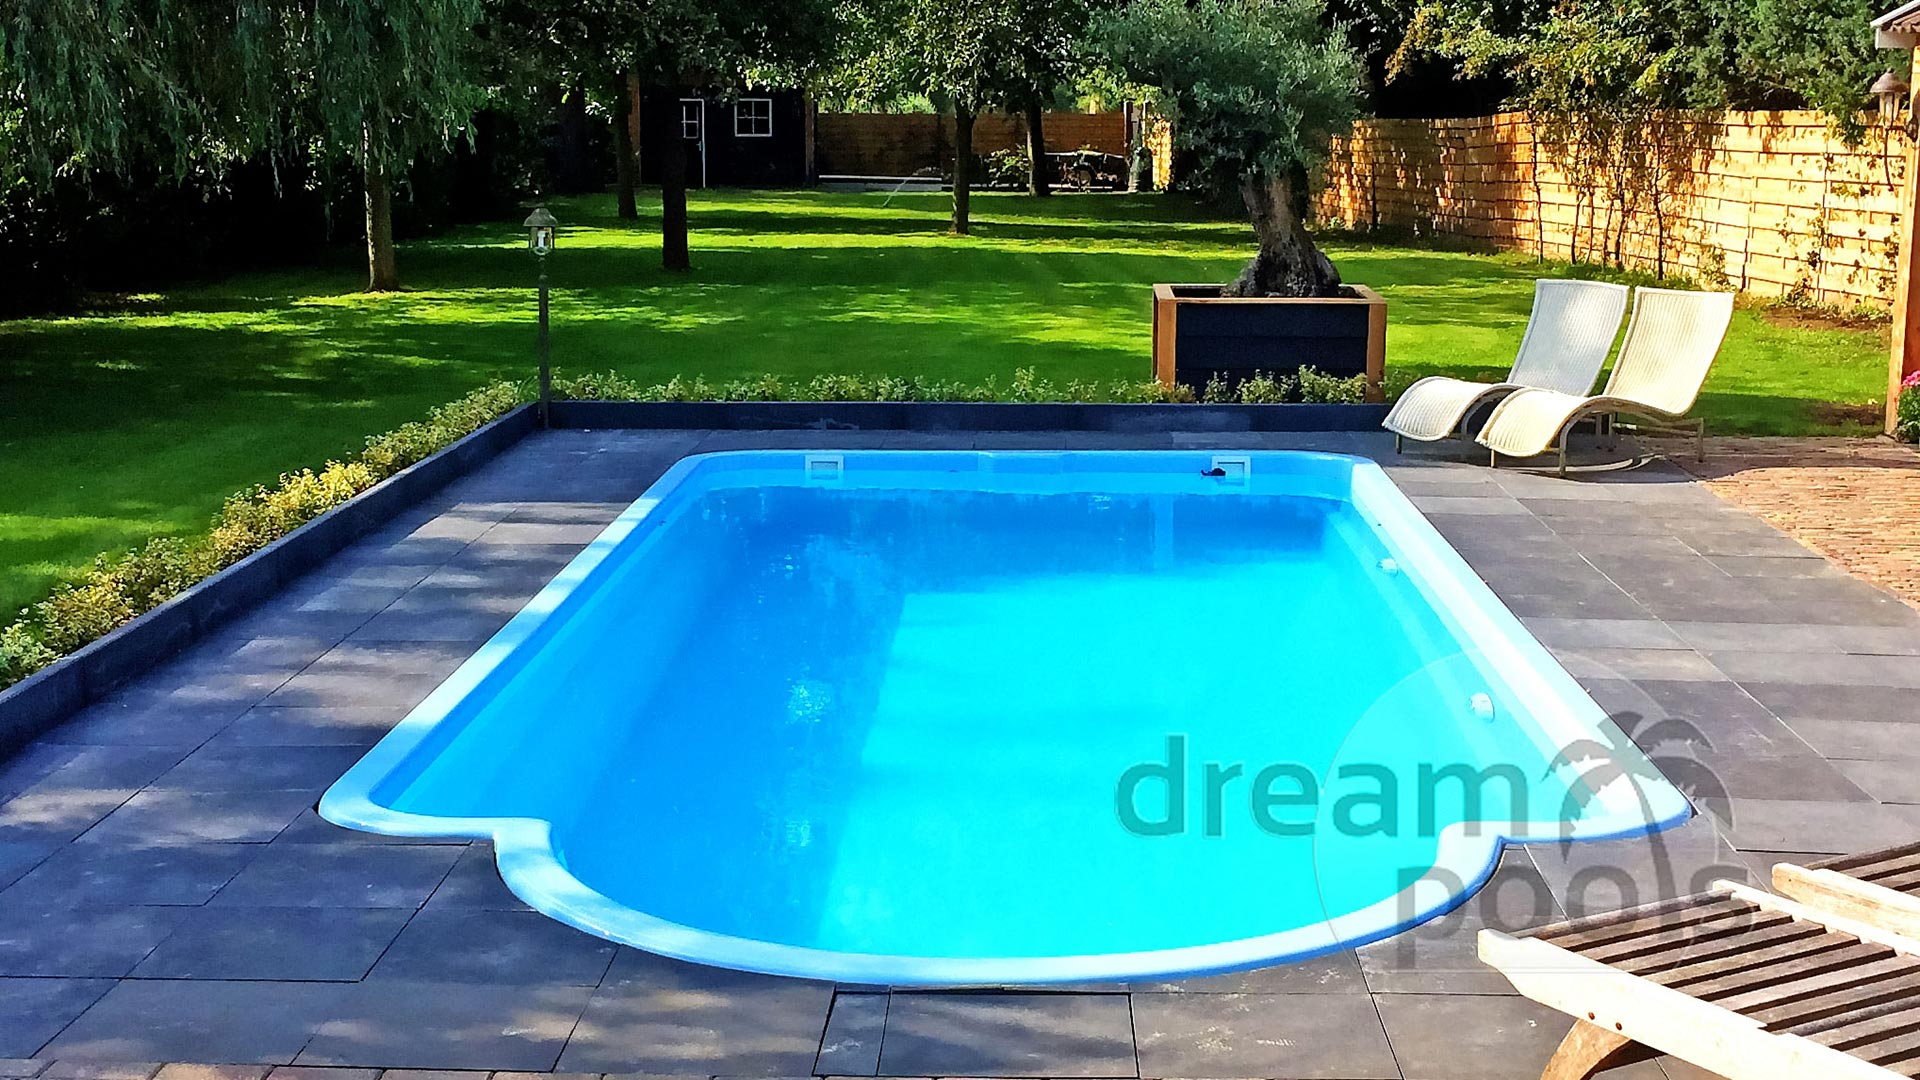 Piscine en polyester piscine coque polyester amazonite 2 for Piscine coque polyester